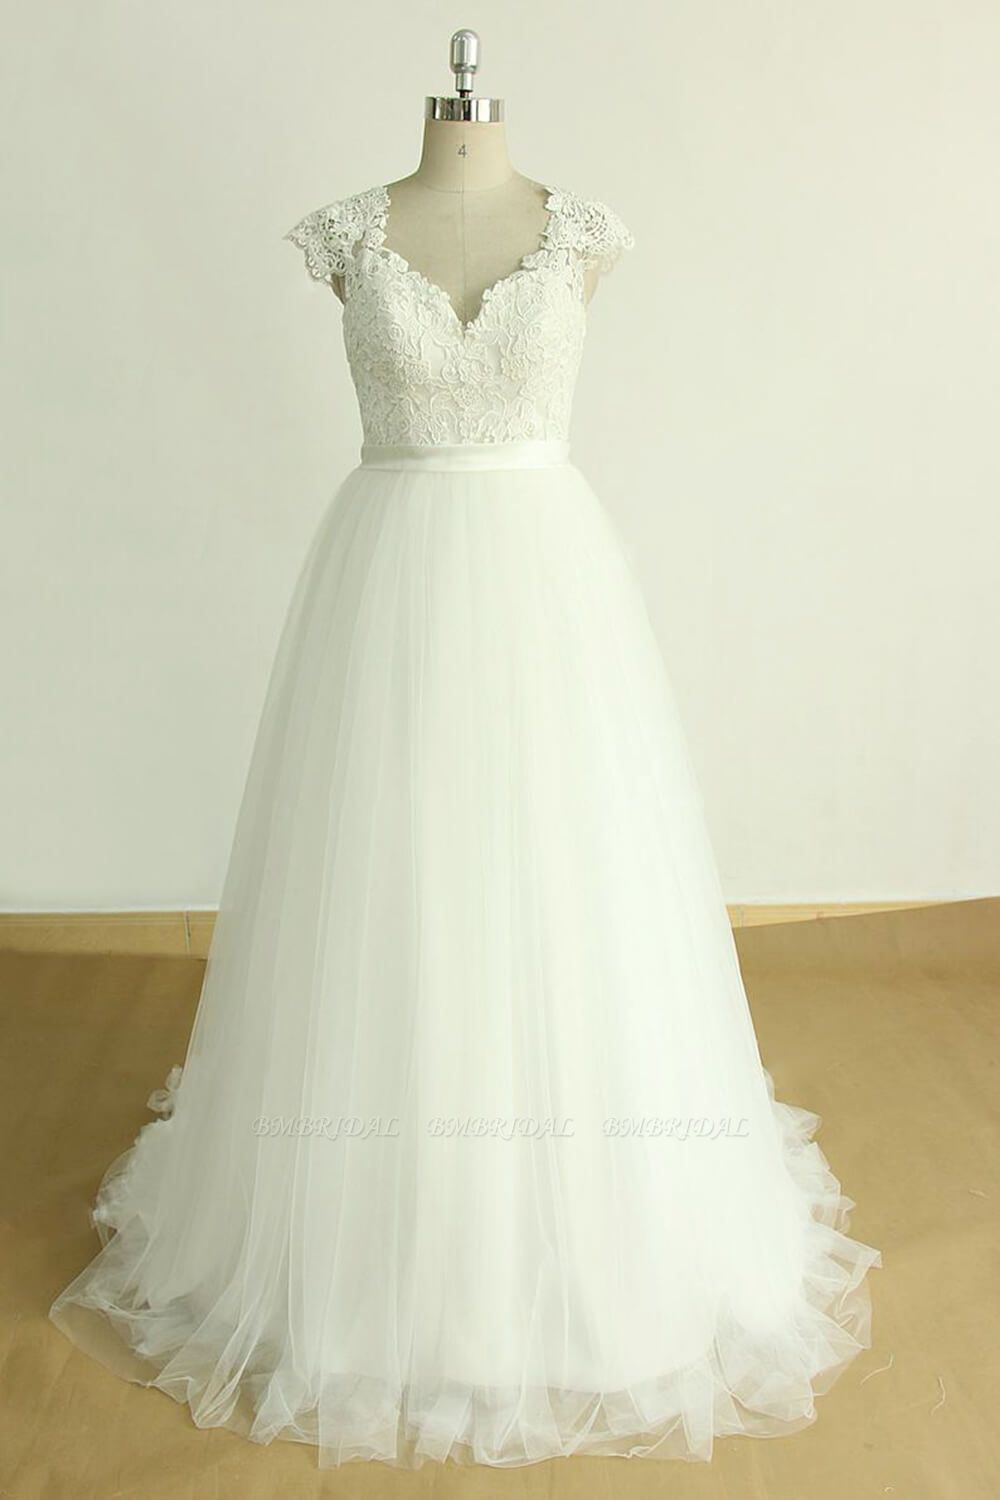 BMbridal Stylish White Tulle Lace Wedding Dress Appliques A-line Ruffles Bridal Gowns On Sale